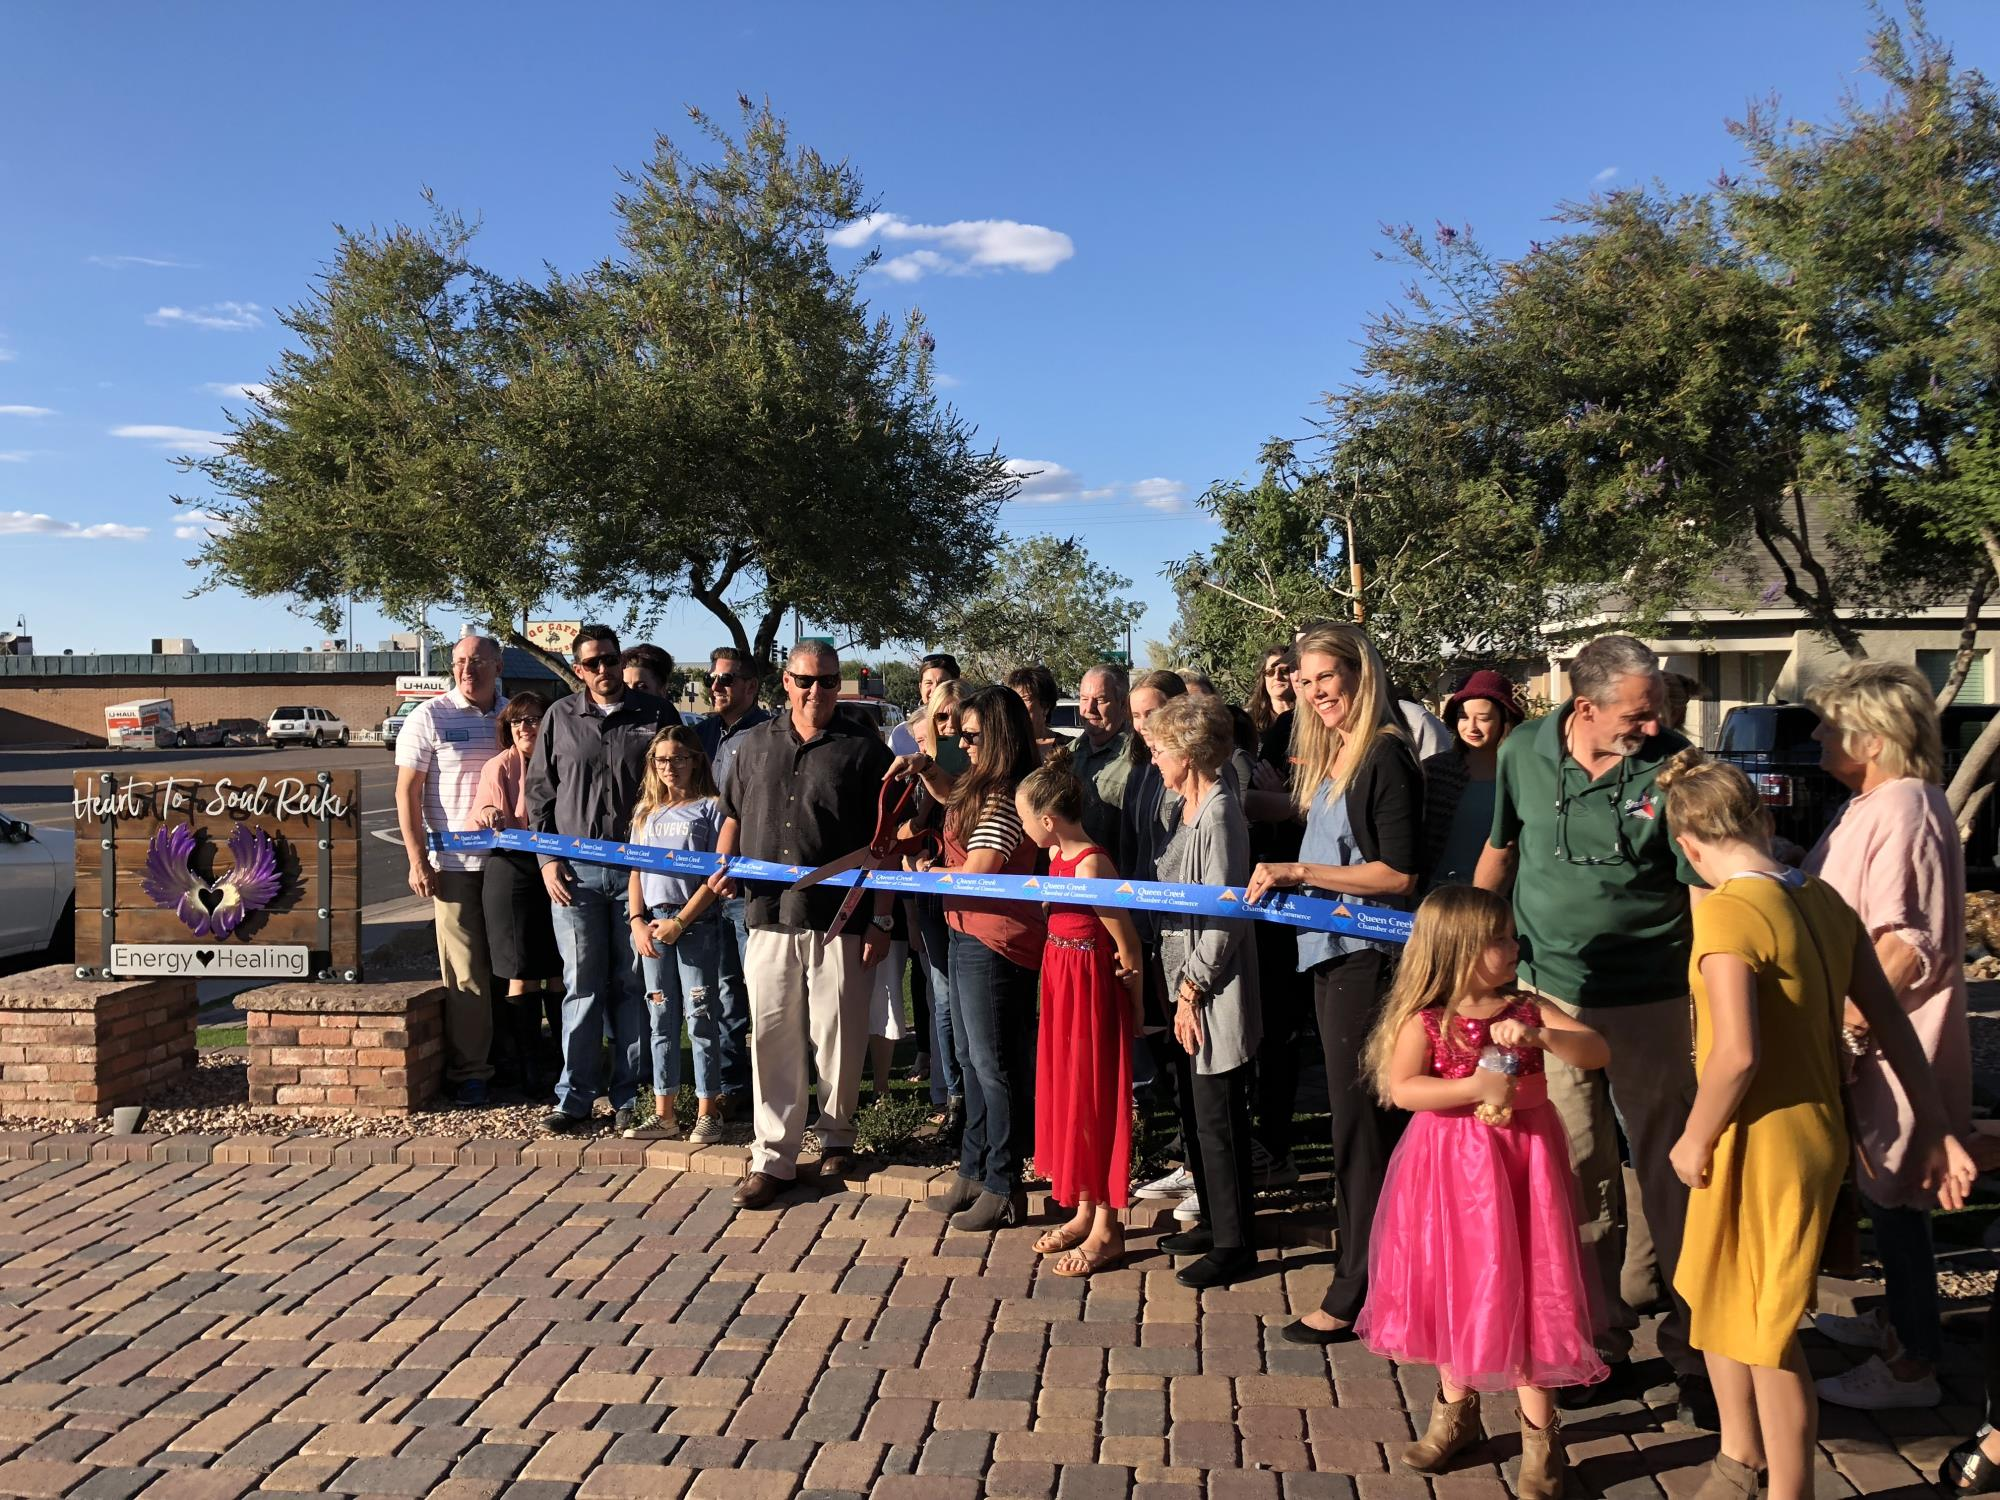 Council Member Wheatley at the Heart to Soul Reiki Ribbon Cutting on Wednesday, October 17